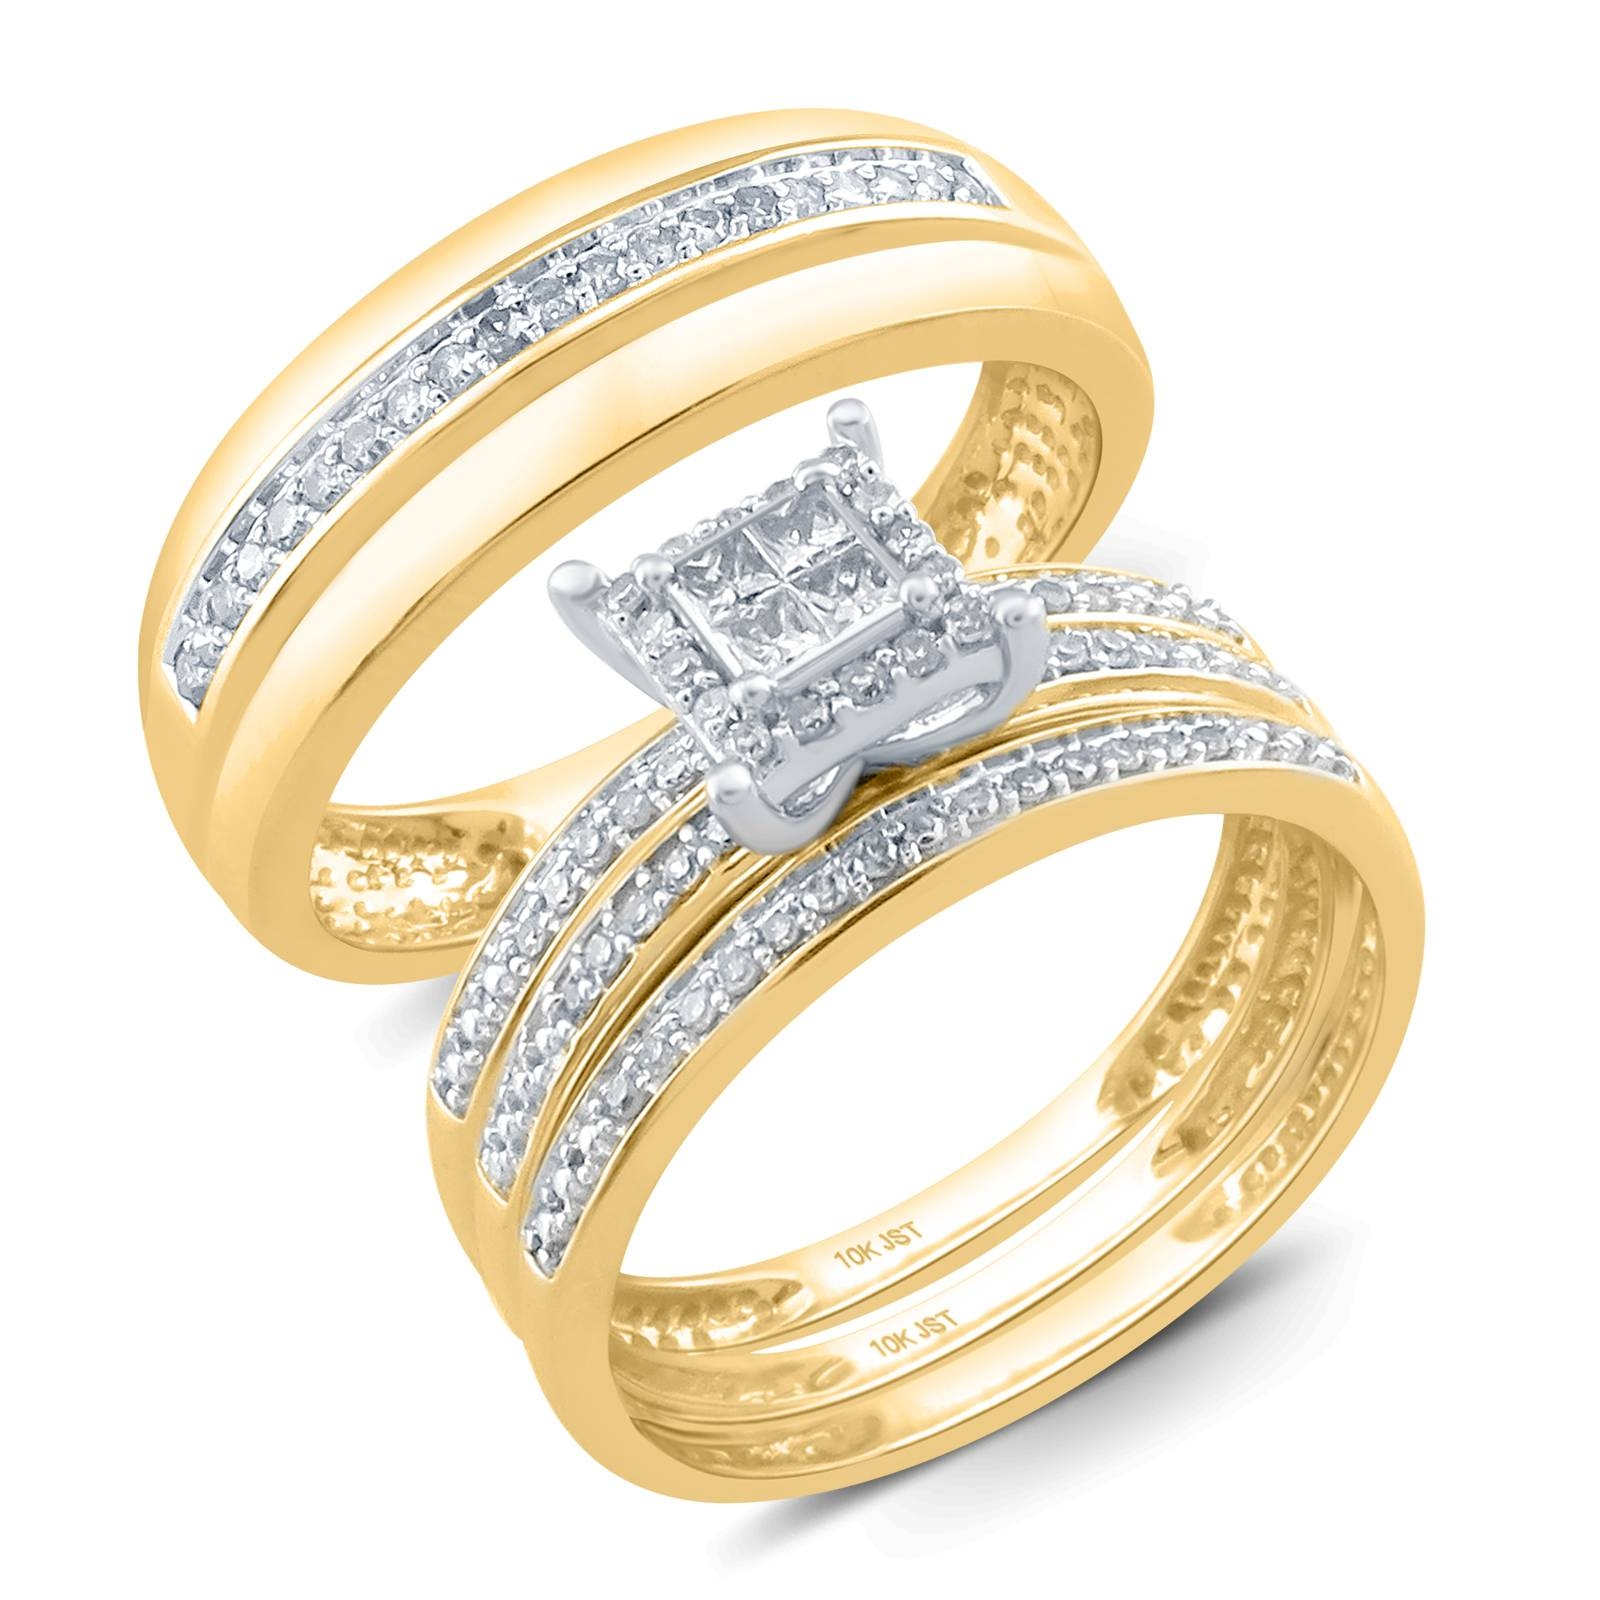 Sears Jewelry Gold Diamond Rings | Wedding, Promise, Diamond Inside Sears Engagement Rings (View 6 of 15)